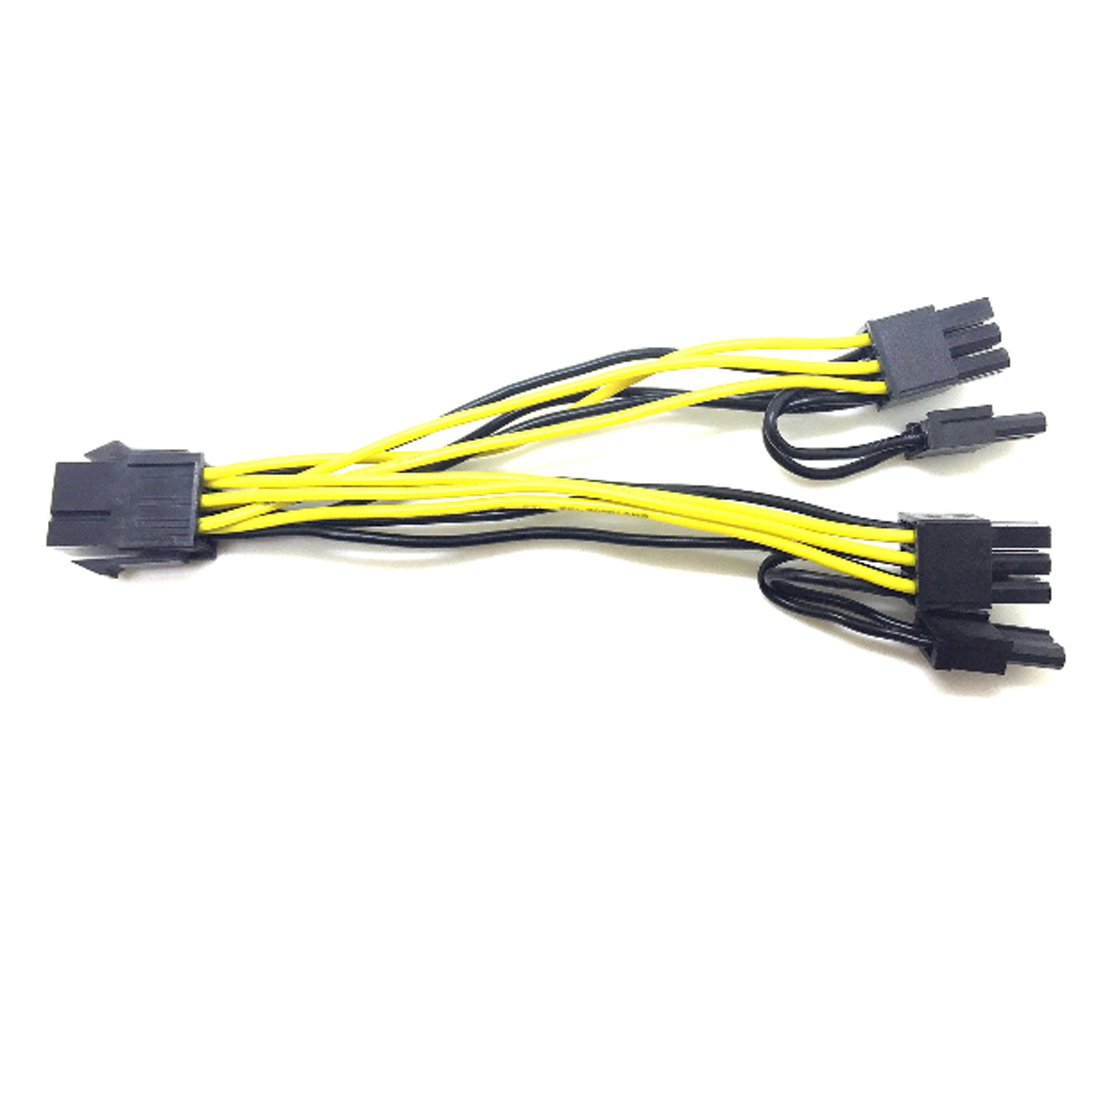 NOYOKERE 6-pin PCI Express to 2 x PCIe 8 (6+2) pin Motherboard Graphics Video Card PCI-e GPU VGA Splitter Hub Power Cable cable high quality 6 pin to 8 pin pci express power converter cable for gpu video card pcie pci e cabo 17july4